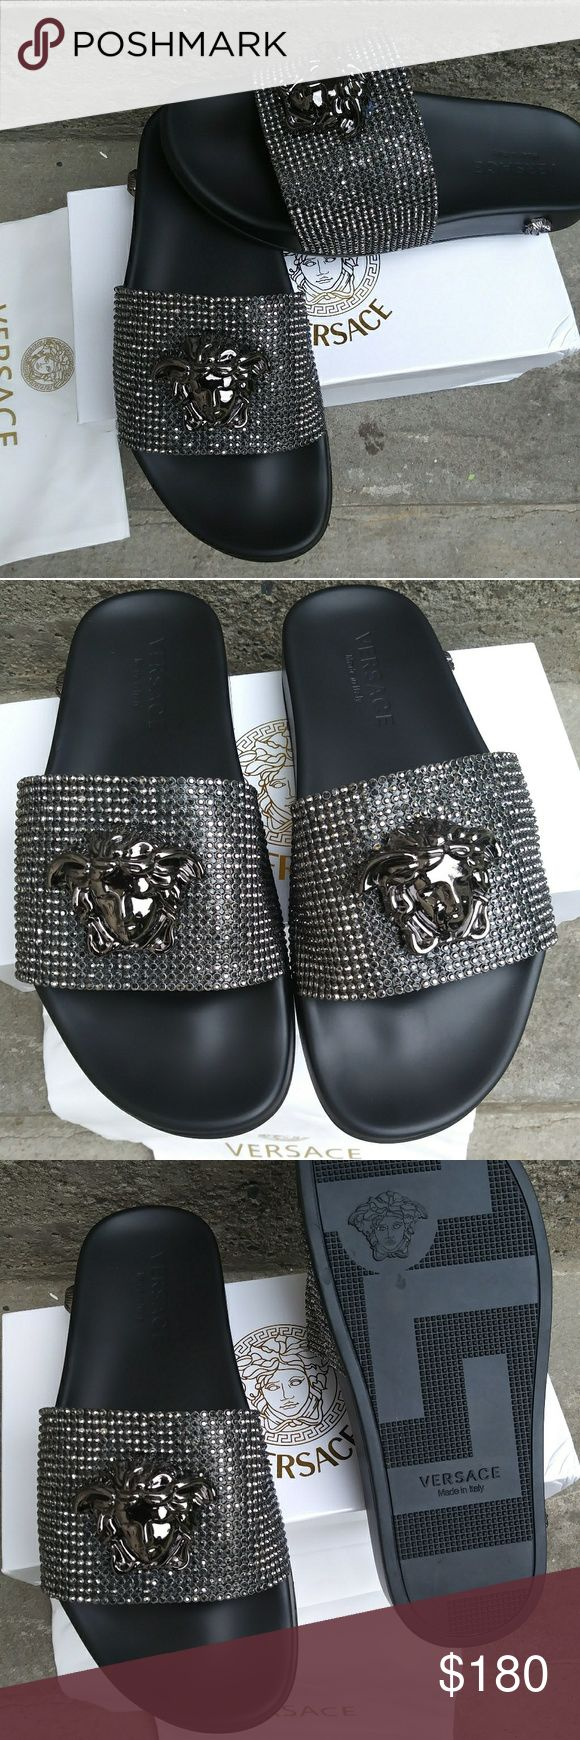 🔥💥📣SALE🔥📣🎆VERSACE SANDAL New in box dust/ shopping card. Size 7.5/8 Versace Shoes Sandals